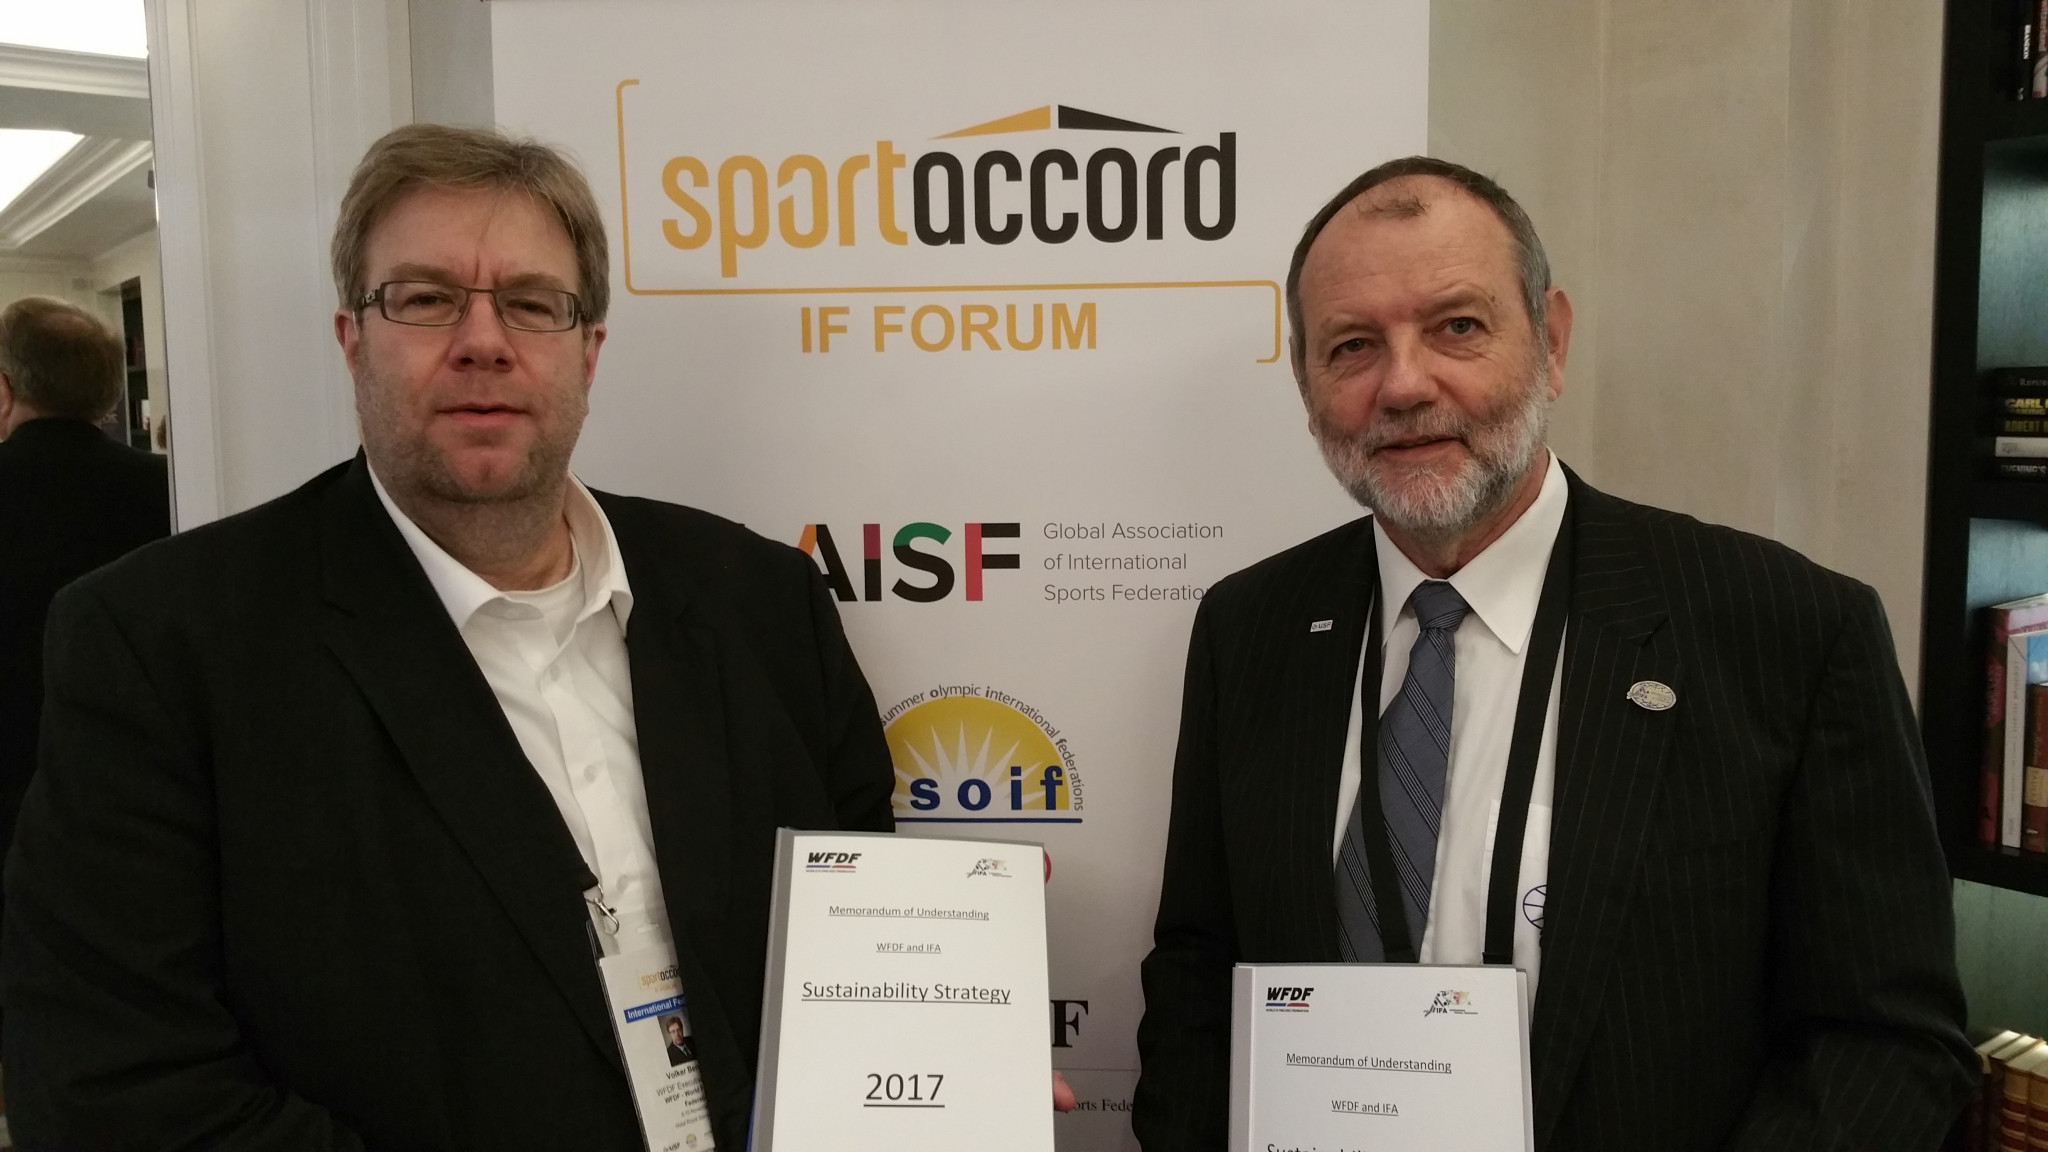 The MoU was signed between WFDF executive director Volker Bernardi, left, and IFA President Karl Weiss ©IFA/WFDF